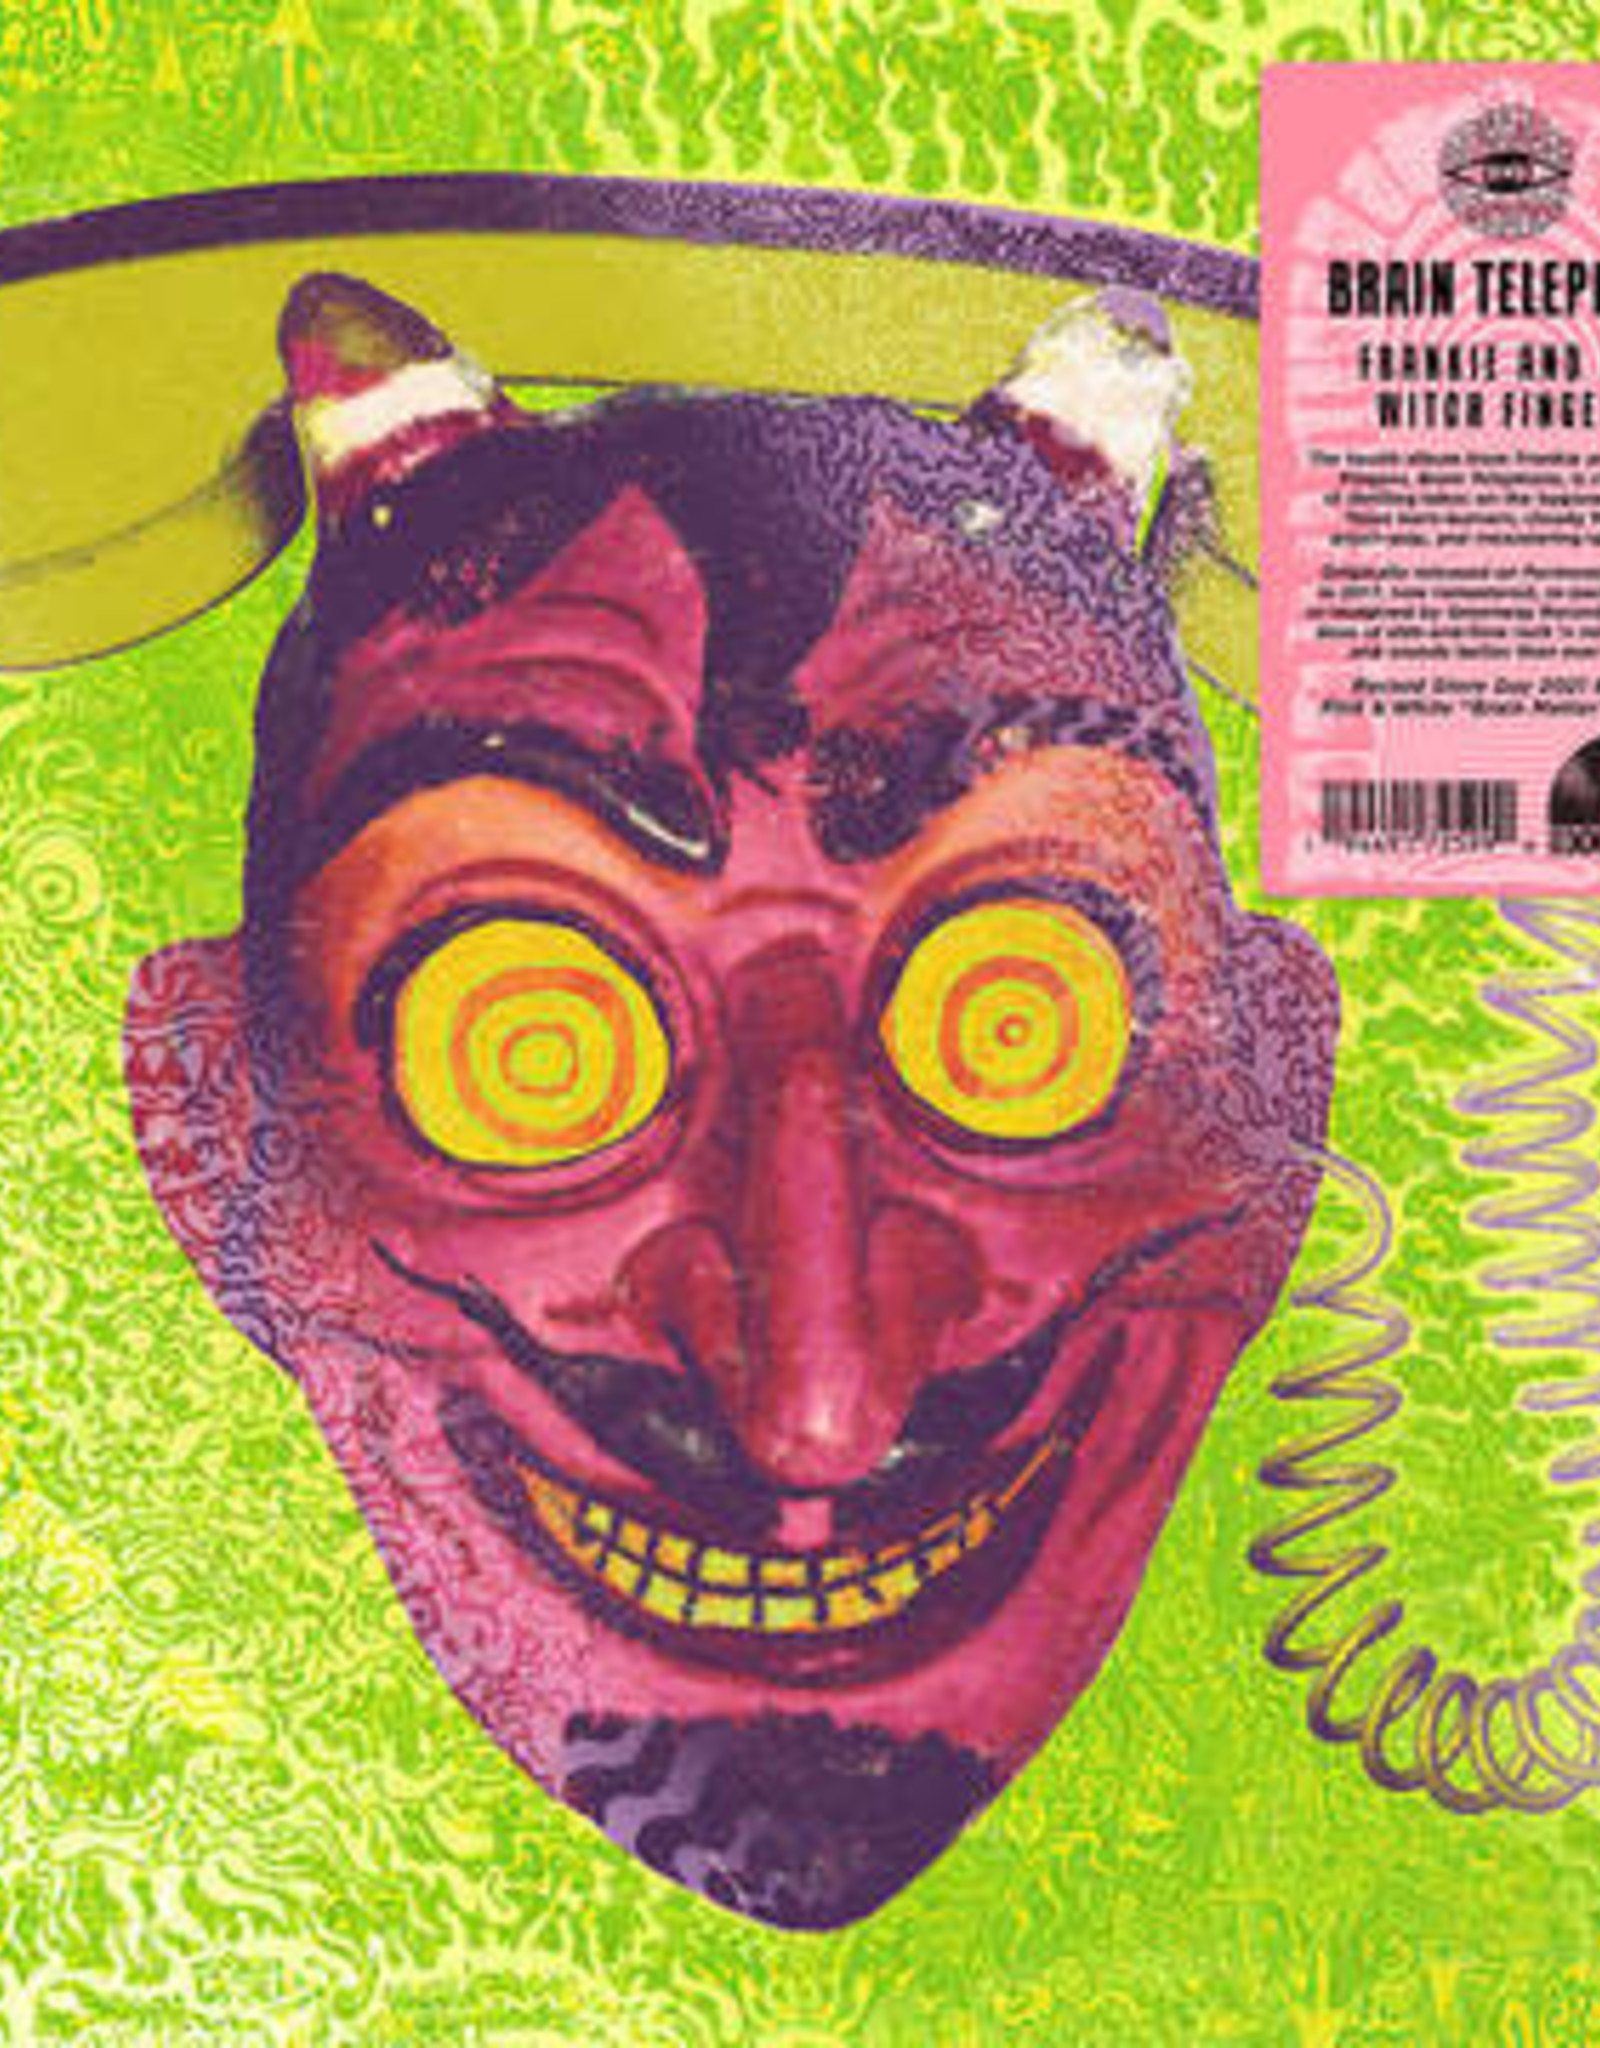 Frankie & the Witch Fingers - Brain Telephone  (Pink & White Vinyl) (RSD 6/21)